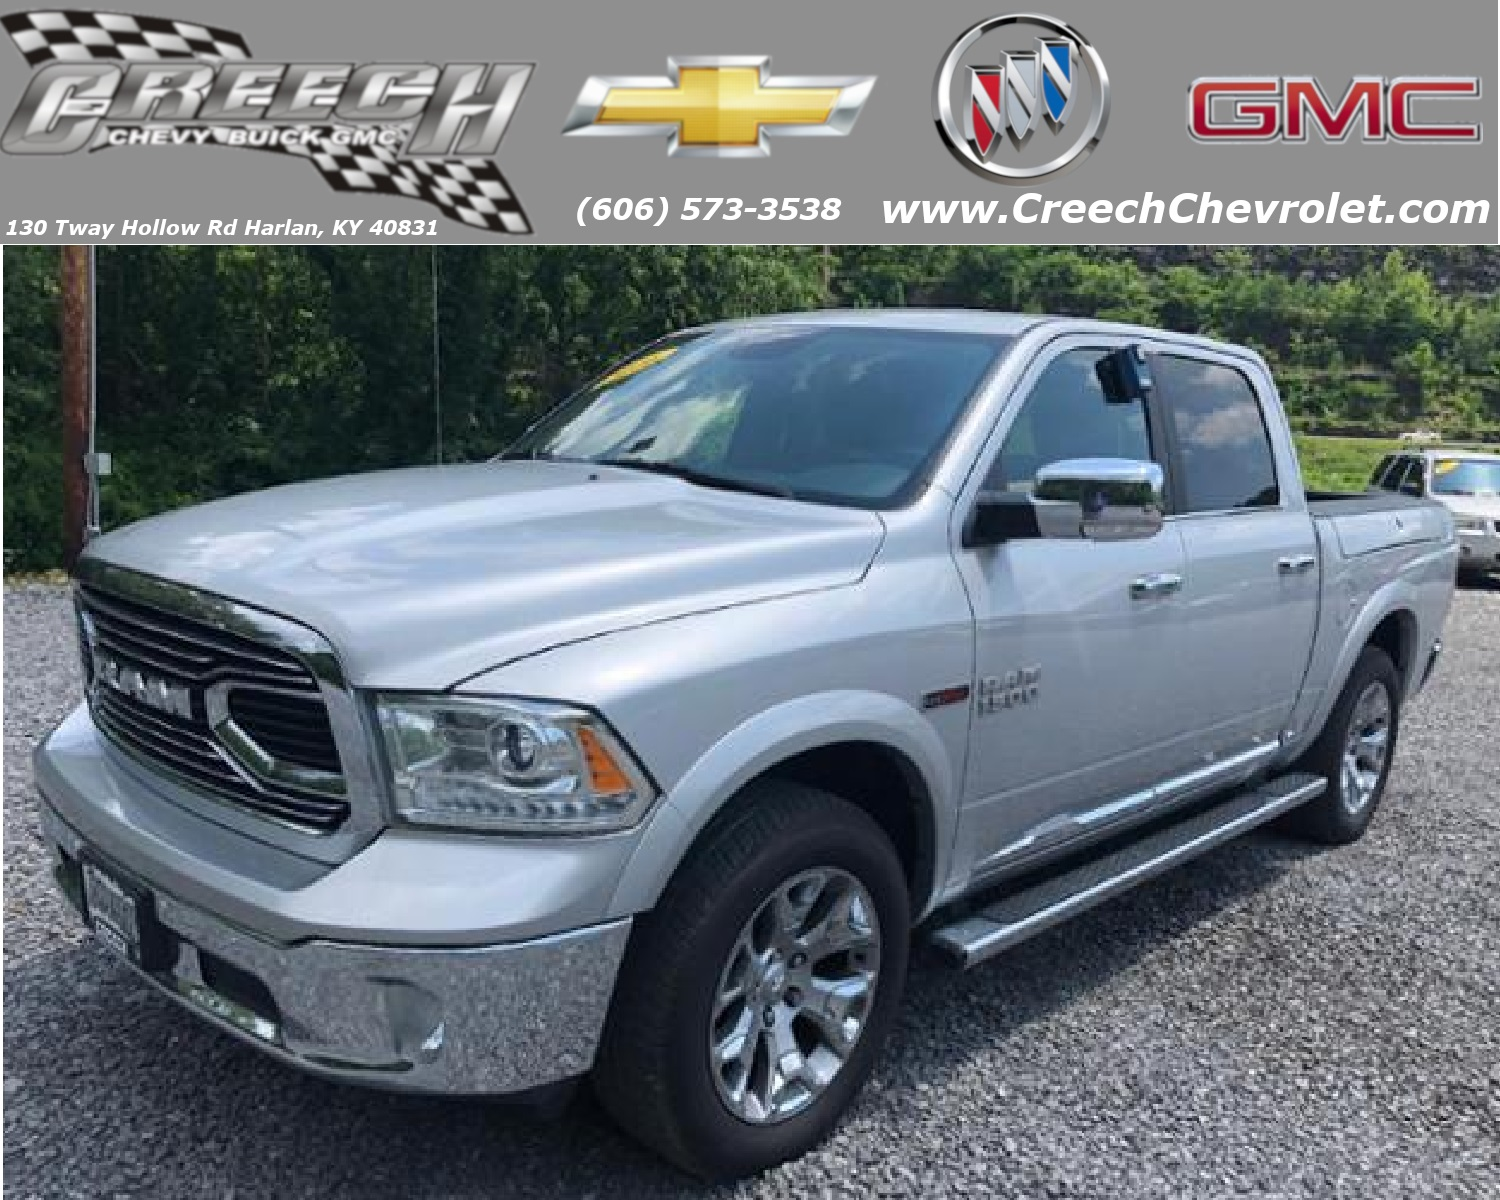 Pre-Owned 2016 Ram 1500 Longhorn Limited Four-Wheel Drive Crew Cab Pickup - Short Bed